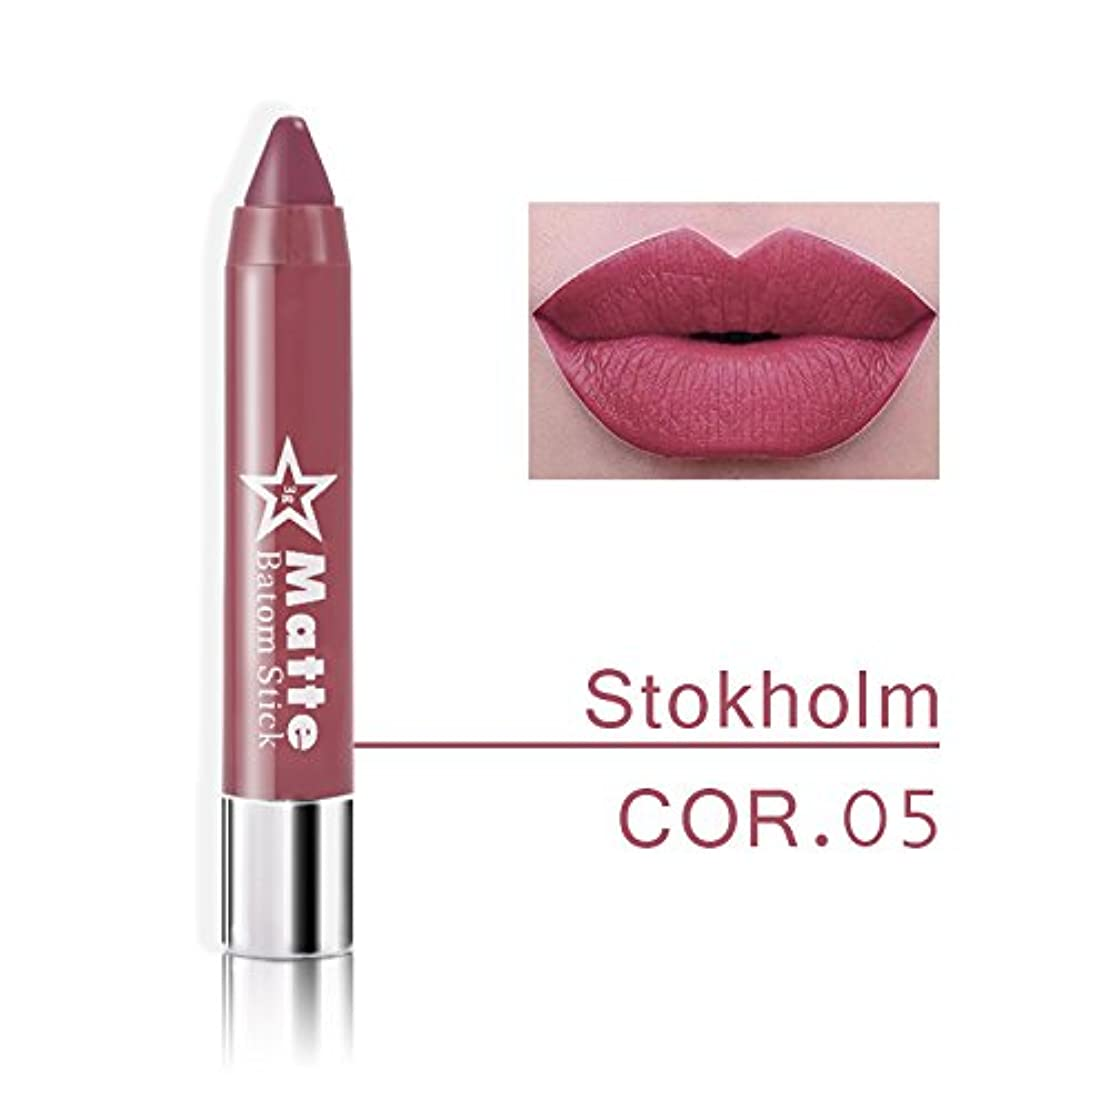 Miss Rose Brand lips Matte Moisturizing Lipstick Makeup Lipsticks Waterproof matte Lip gloss Mate Lipsticks Make up